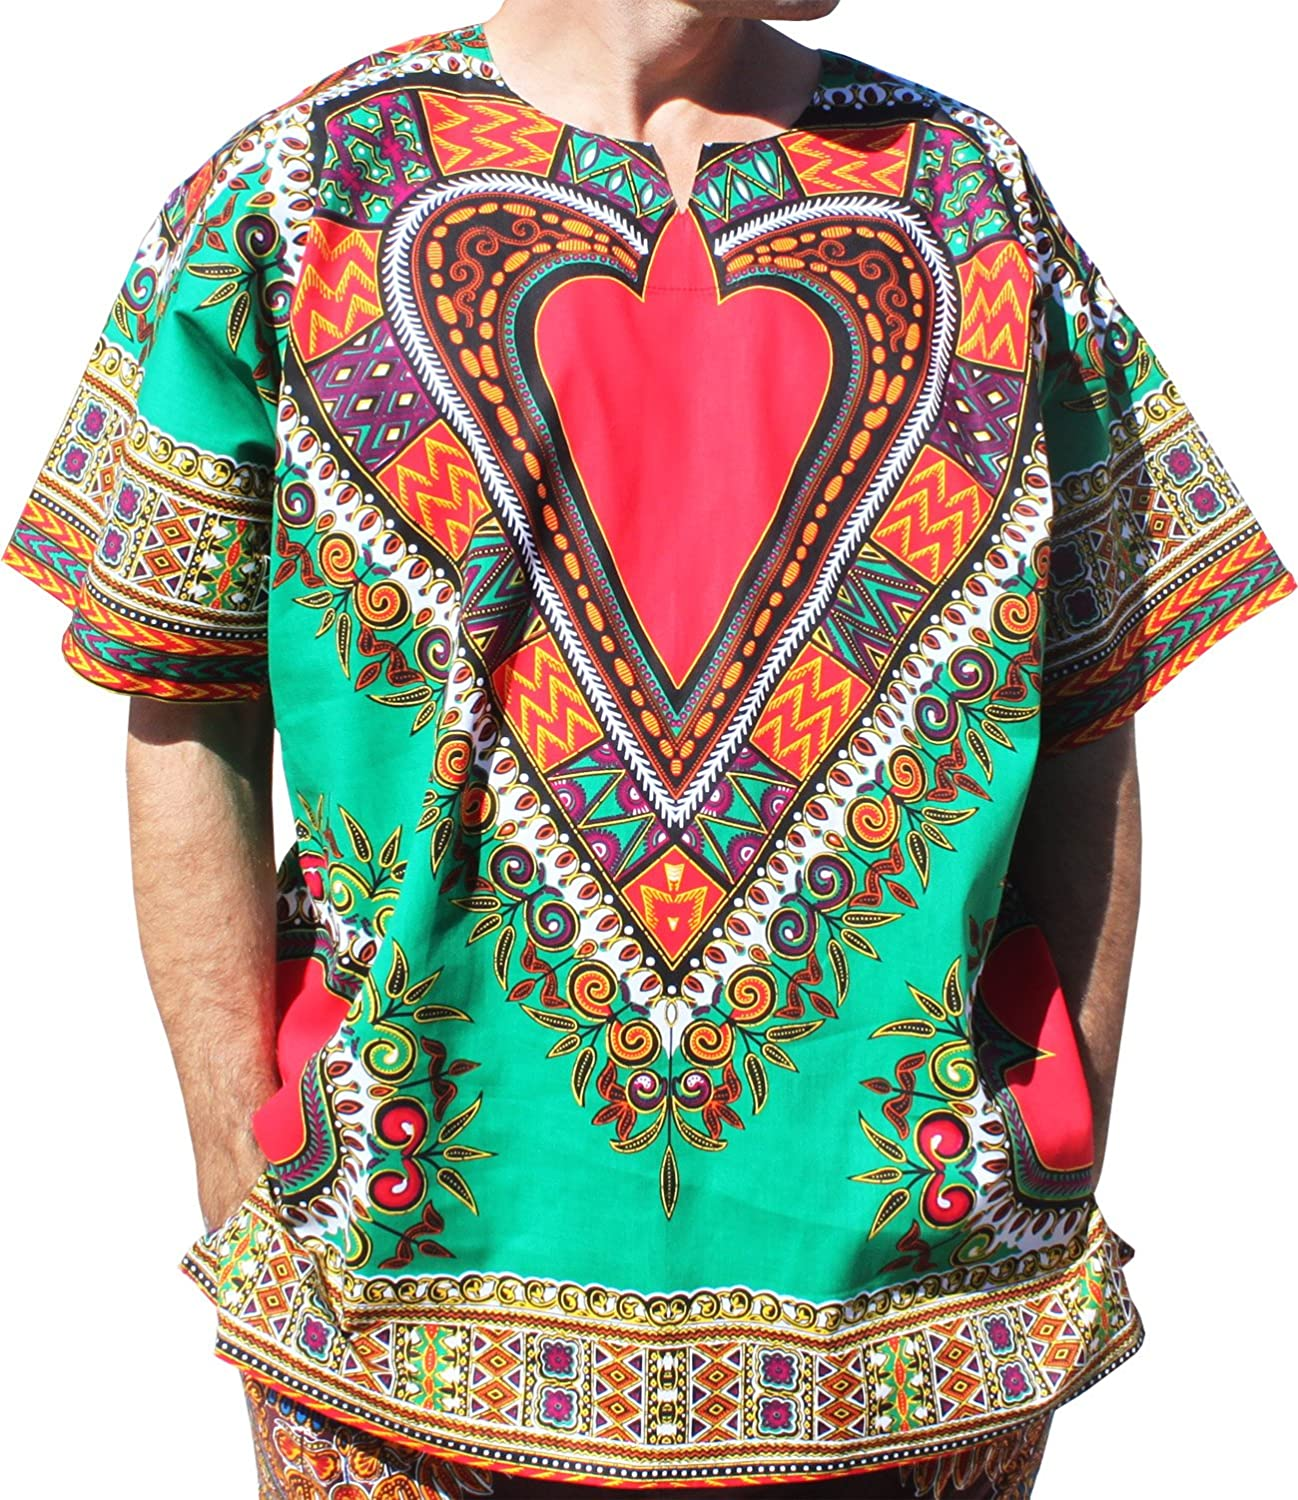 RaanPahMuang Brand Unisex Bright Heart Cotton Africa Dashiki Shirt Plain Front